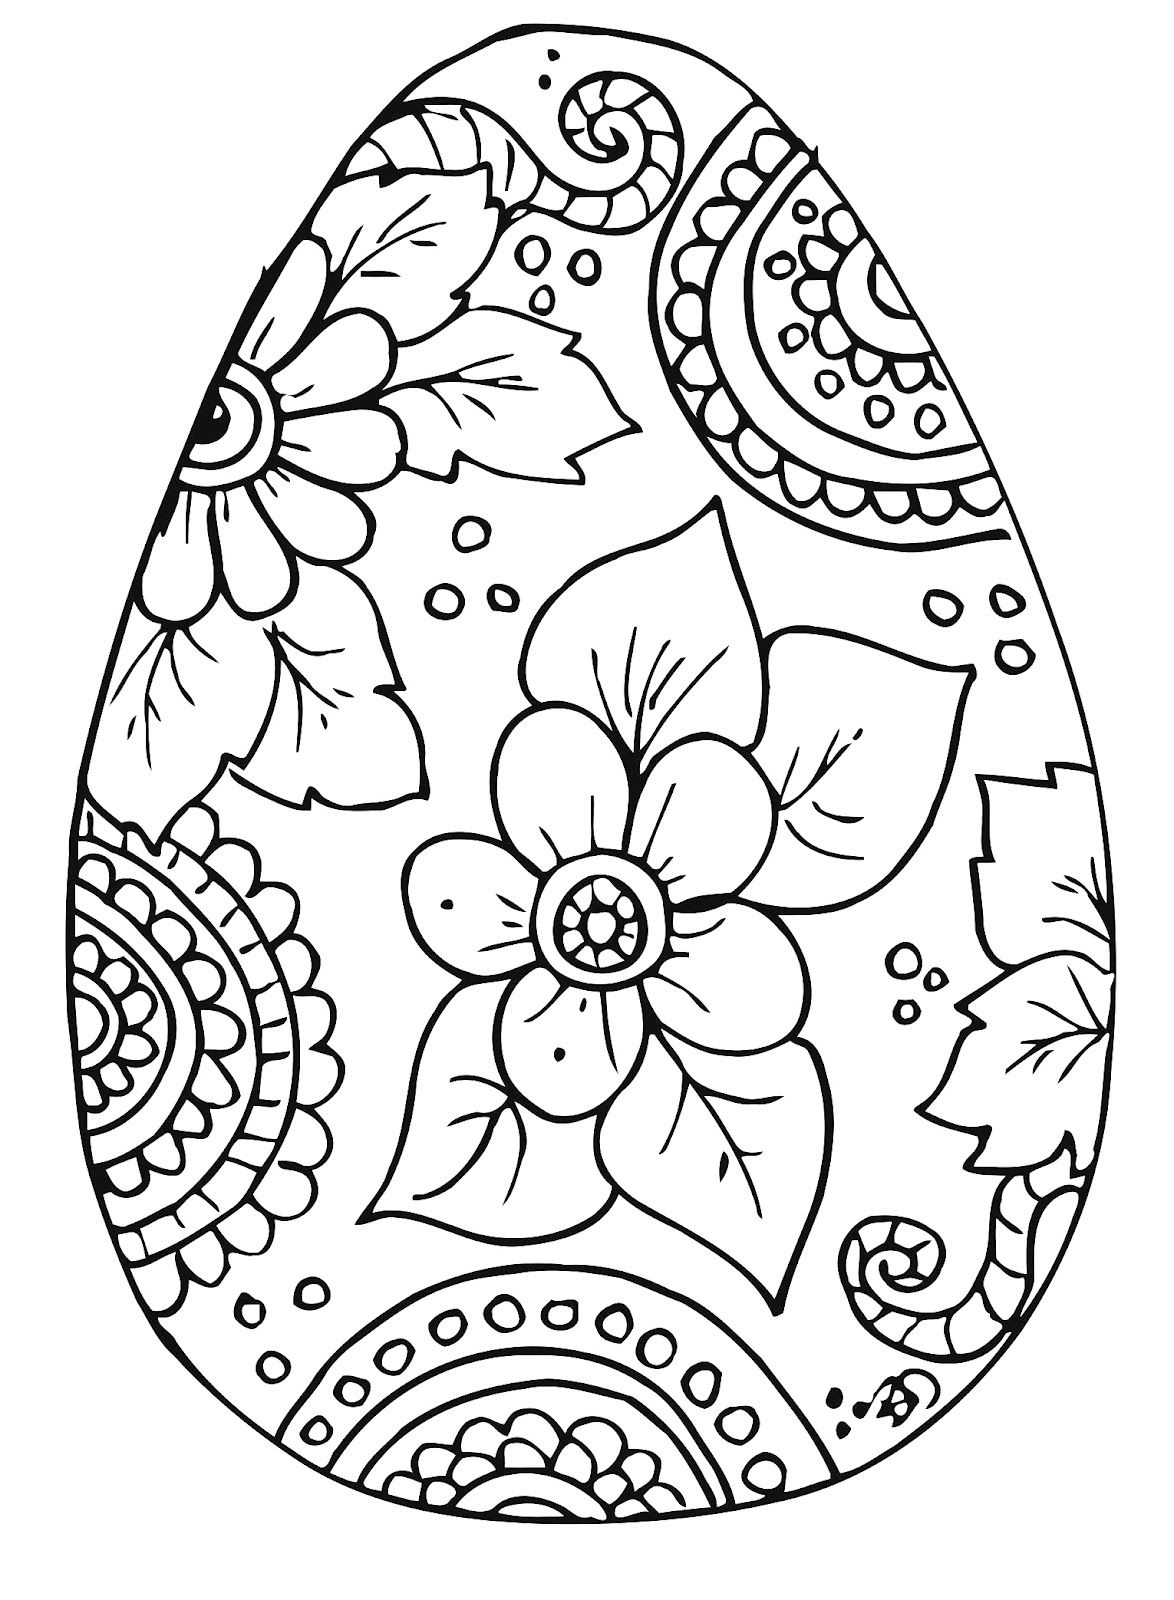 Printable Easter Coloring Pages Printable 360 Degree Download Of Easter Egg Designs Coloring Pages to Print